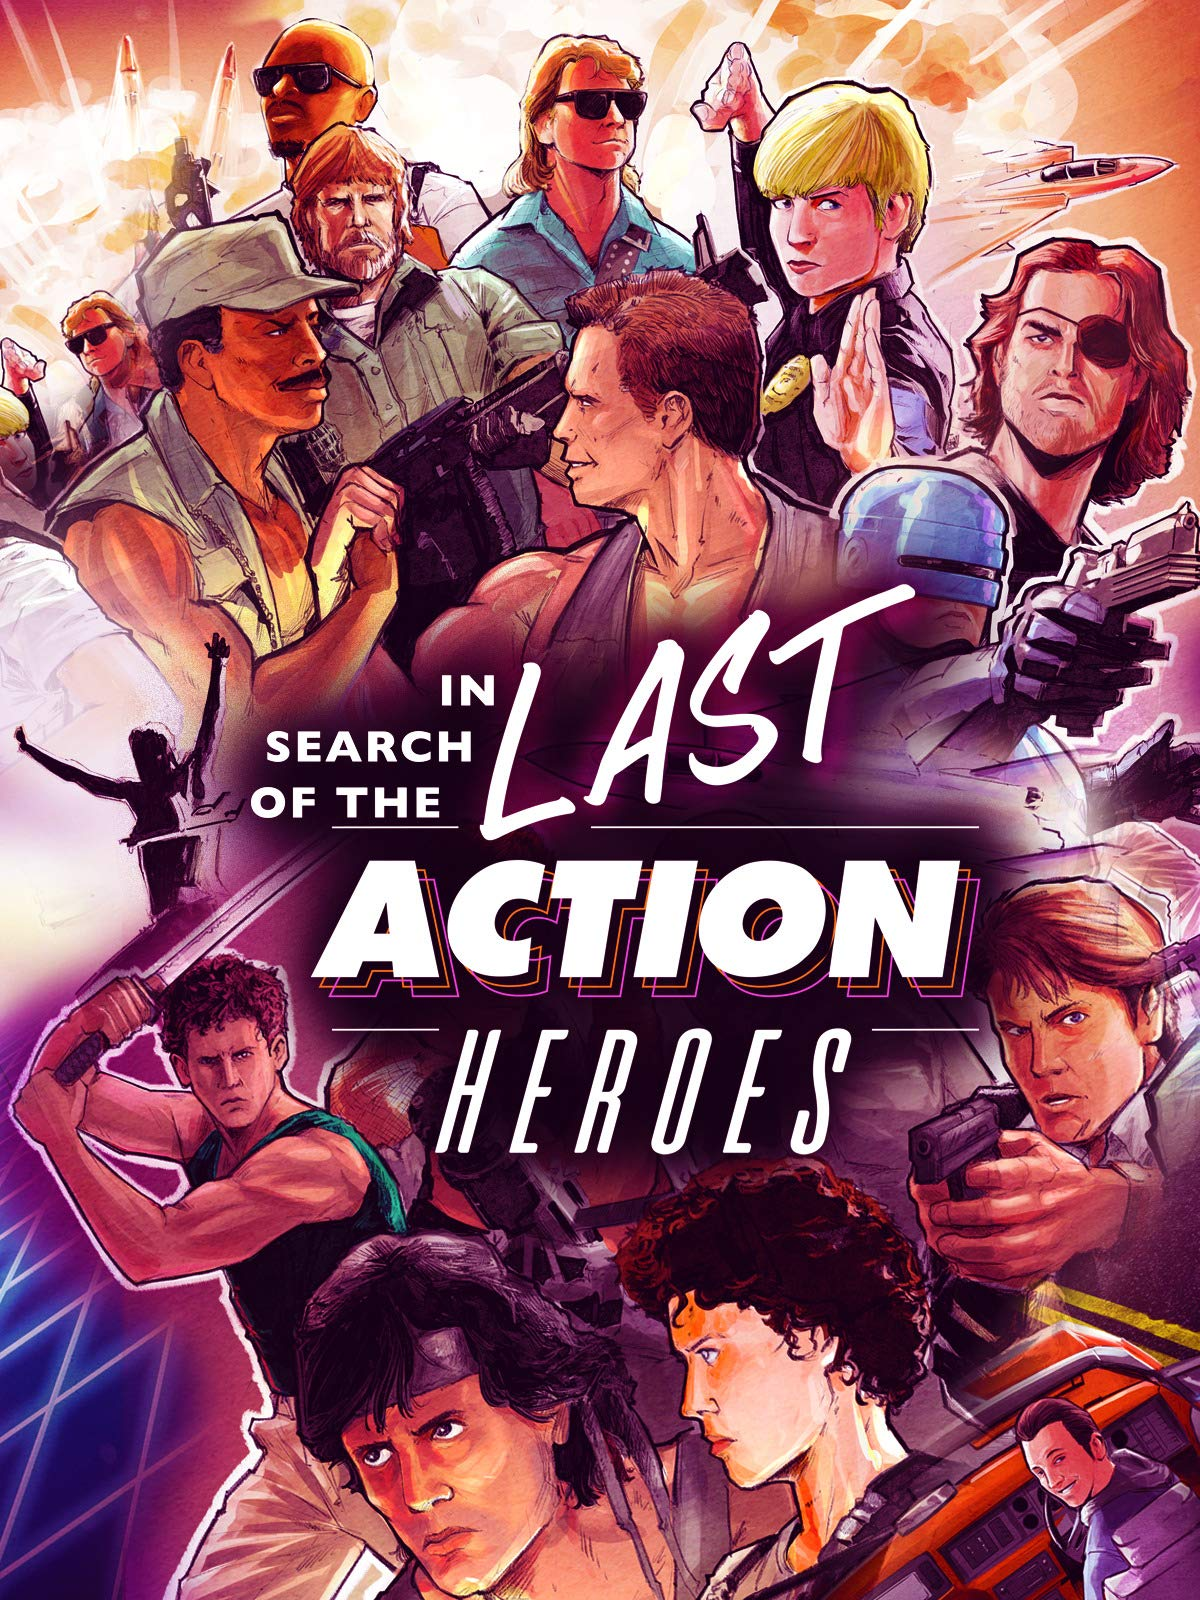 In Search of the Last Action Heroes on Amazon Prime Video UK